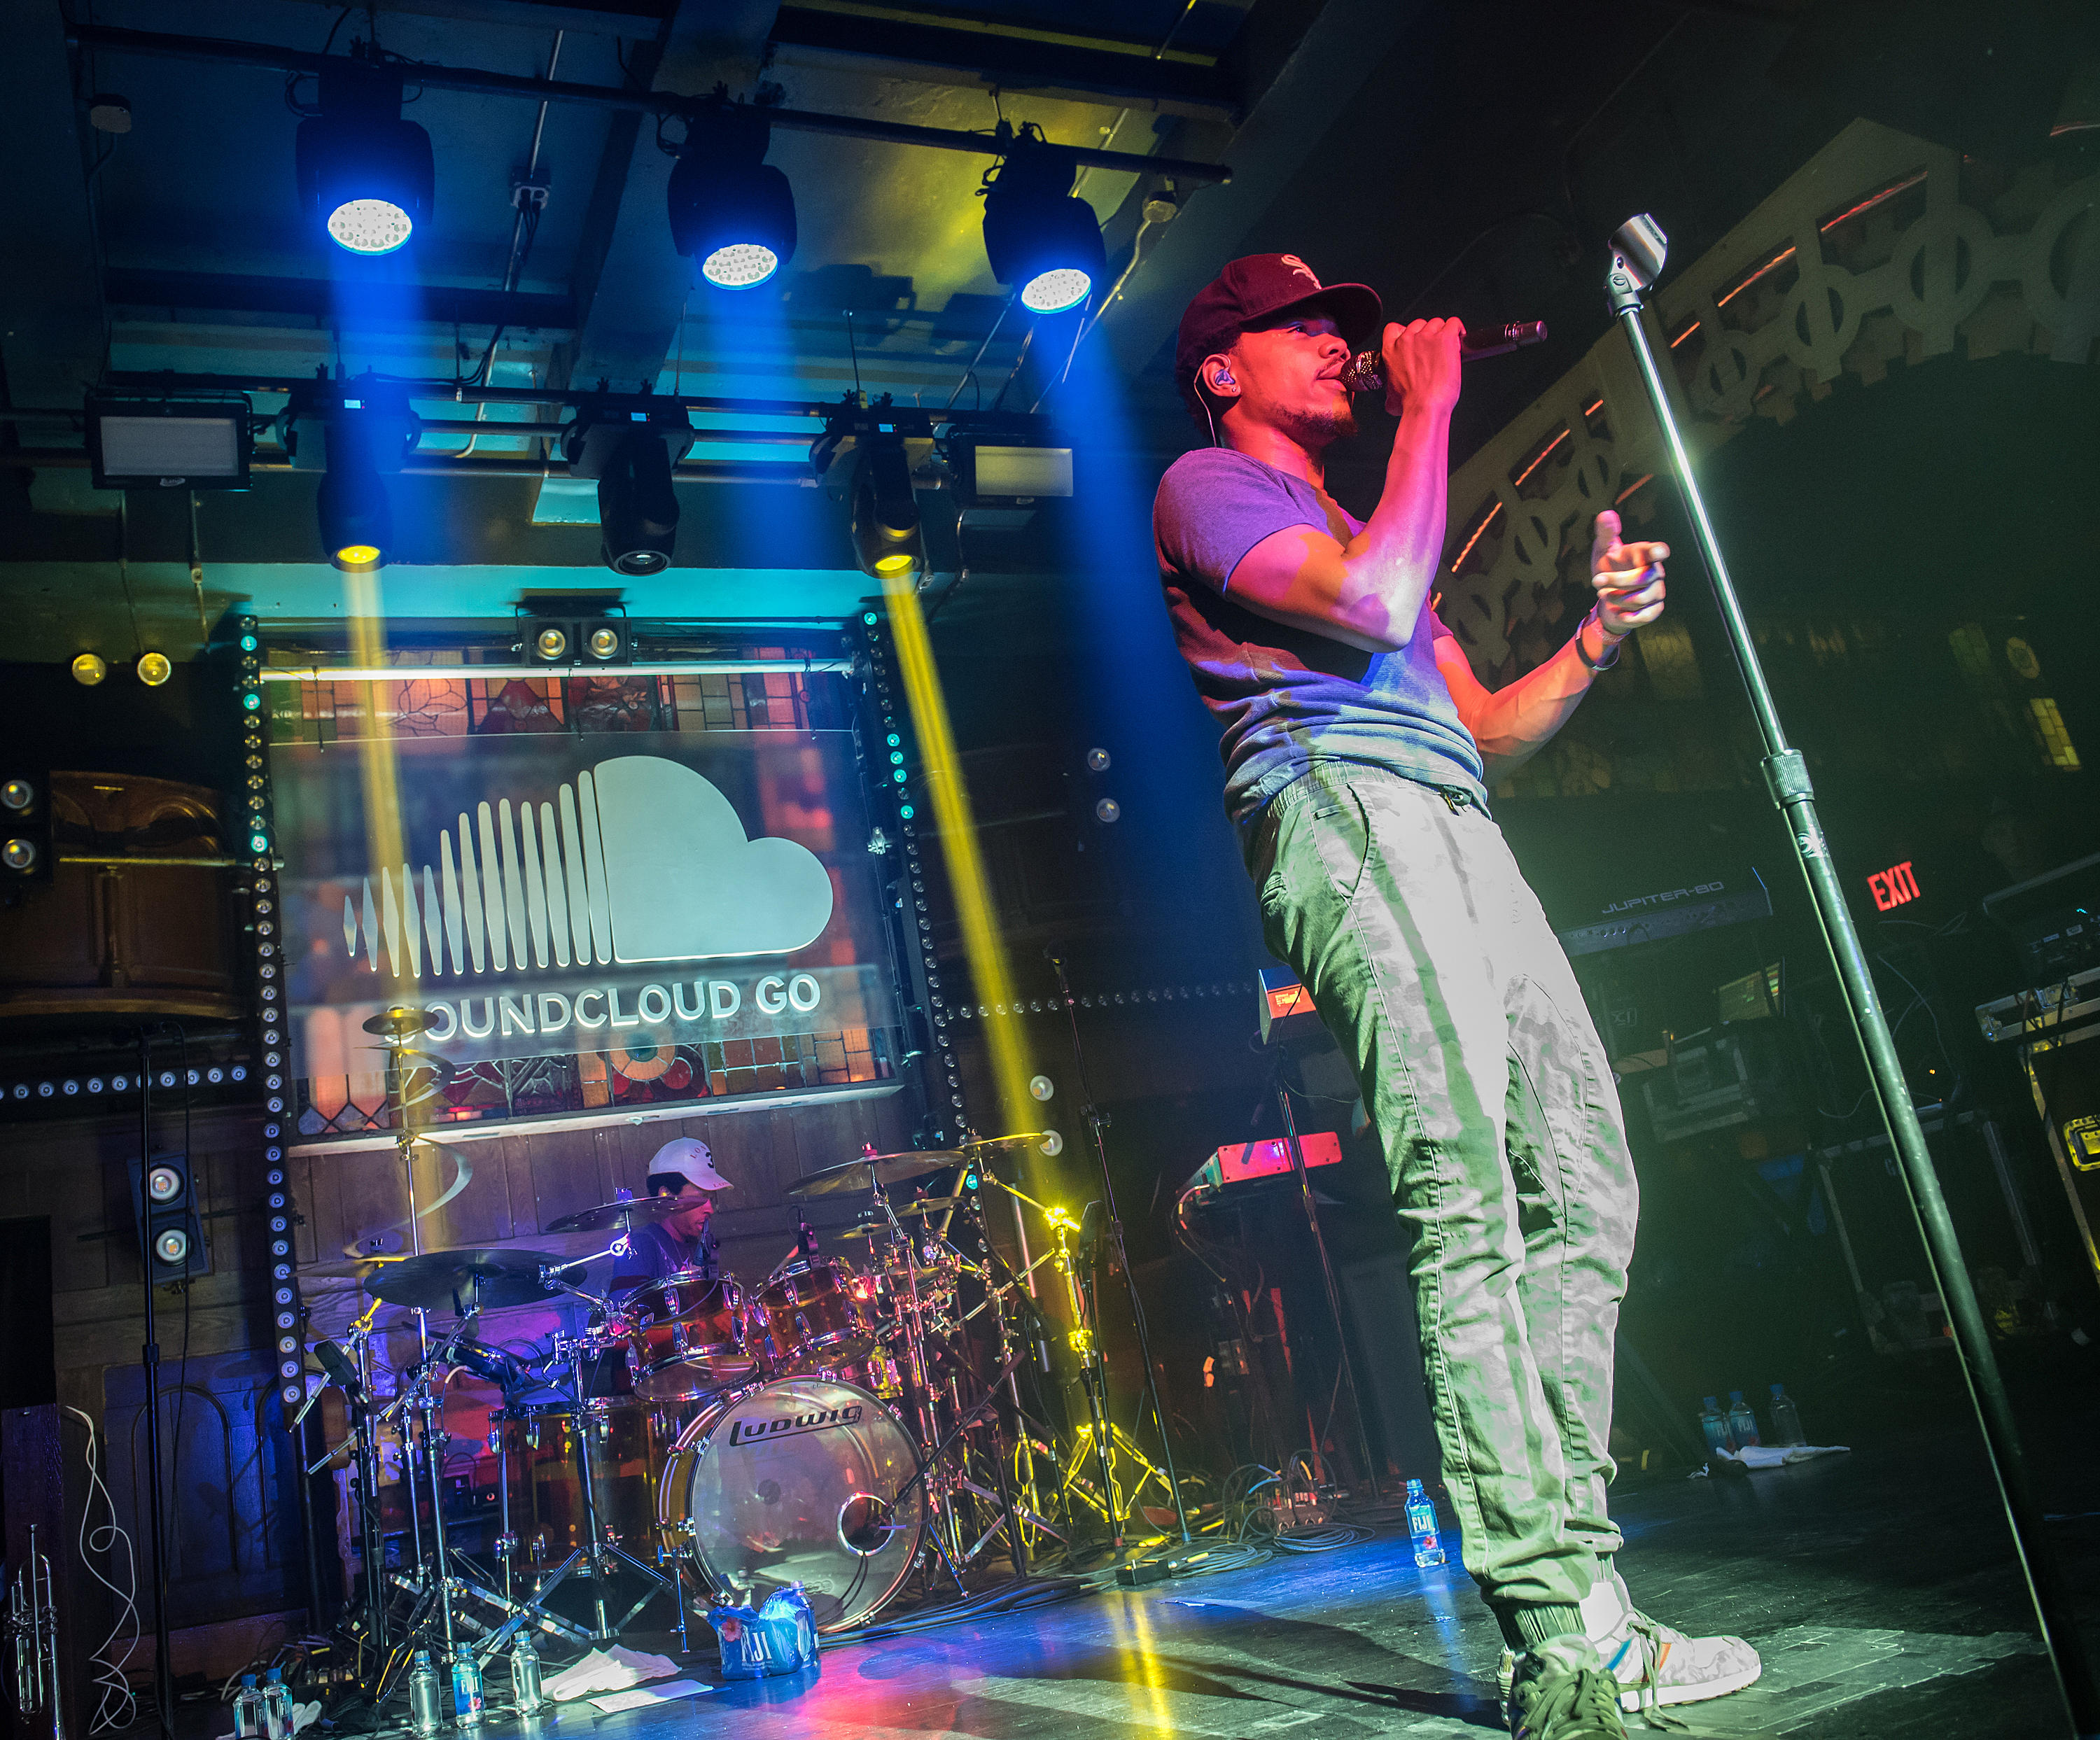 """<p>NEW YORK, NEW YORK - MARCH 31:  Hip-hop artist Chance The Rapper performs during the SoundCloud Go Launch at Flash Factory on March 31, 2016 in New York City. Partly thanks to the&nbsp;<a href=""""https://www.cnet.com/news/us-music-subscriptions-equal-the-entire-population-of-canada-now/"""">growth of streaming</a>, independent unsigned artists are reaching heights of popularity that were once limited to stars backed by a major label. Chance the Rapper, for example, rose to prominence without a label via mixtapes posted to&nbsp;<a href=""""https://www.cnet.com/tags/soundcloud/"""">SoundCloud</a>&nbsp;and won the&nbsp;<a href=""""https://www.cnet.com/news/chance-the-rapper-grammy-coloring-book-itunes-spotify-soundcloud-apple-music/"""">Grammy for best new artist</a>&nbsp;last year.</p>"""